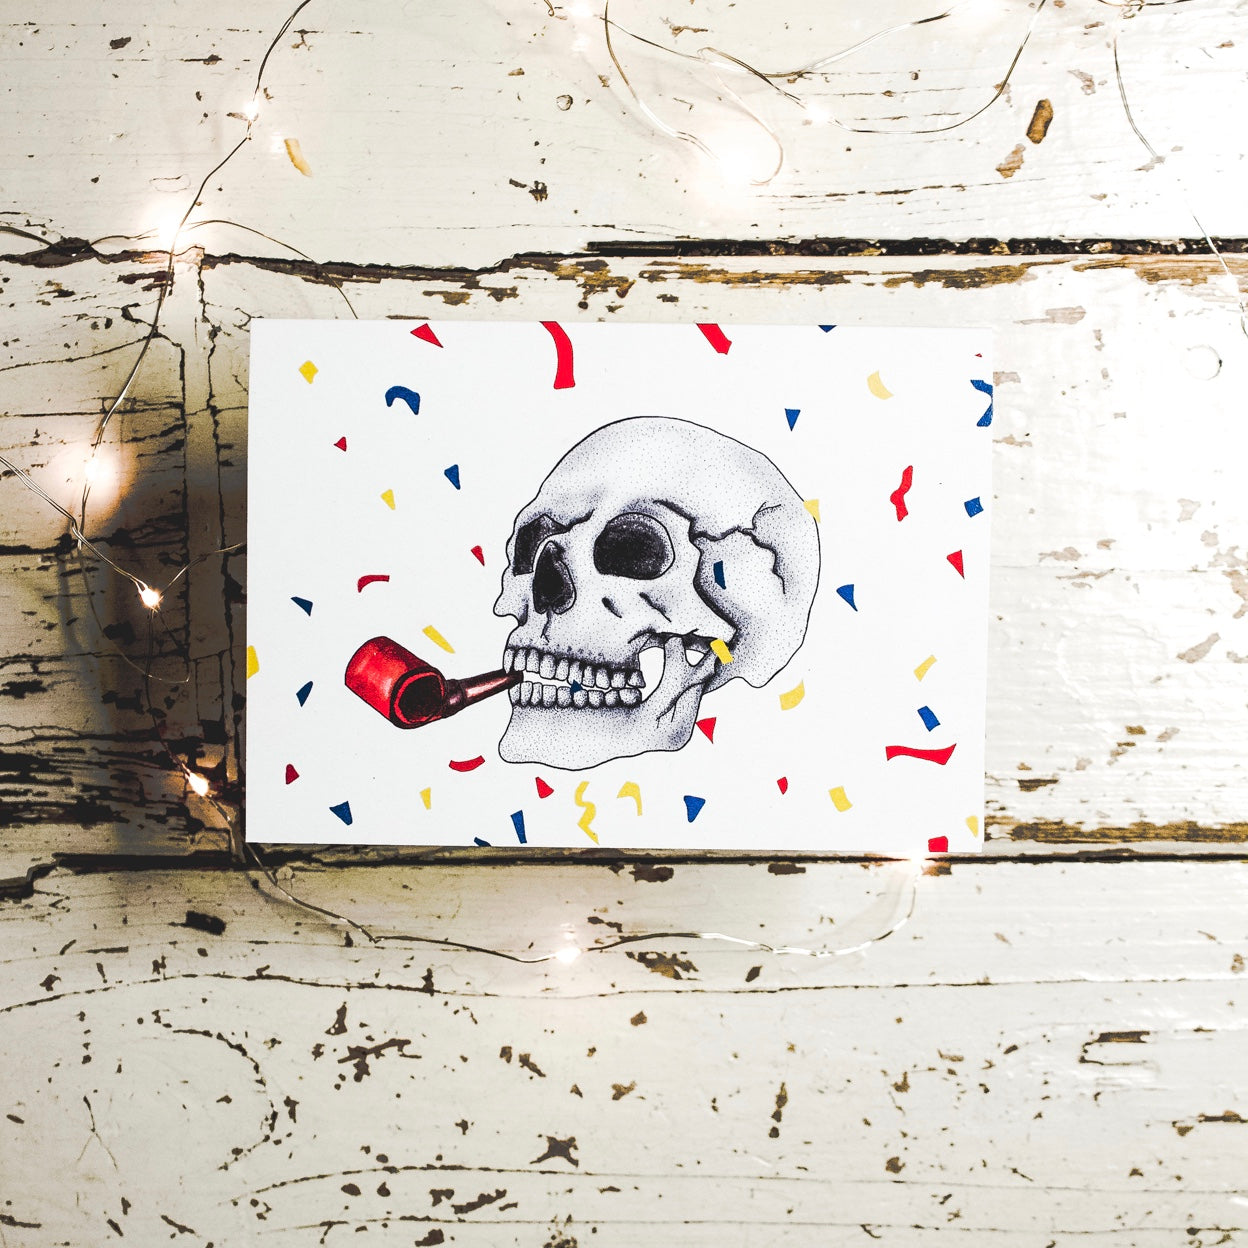 Gothic Birthday Card with Colourful Confetti and Skull Design